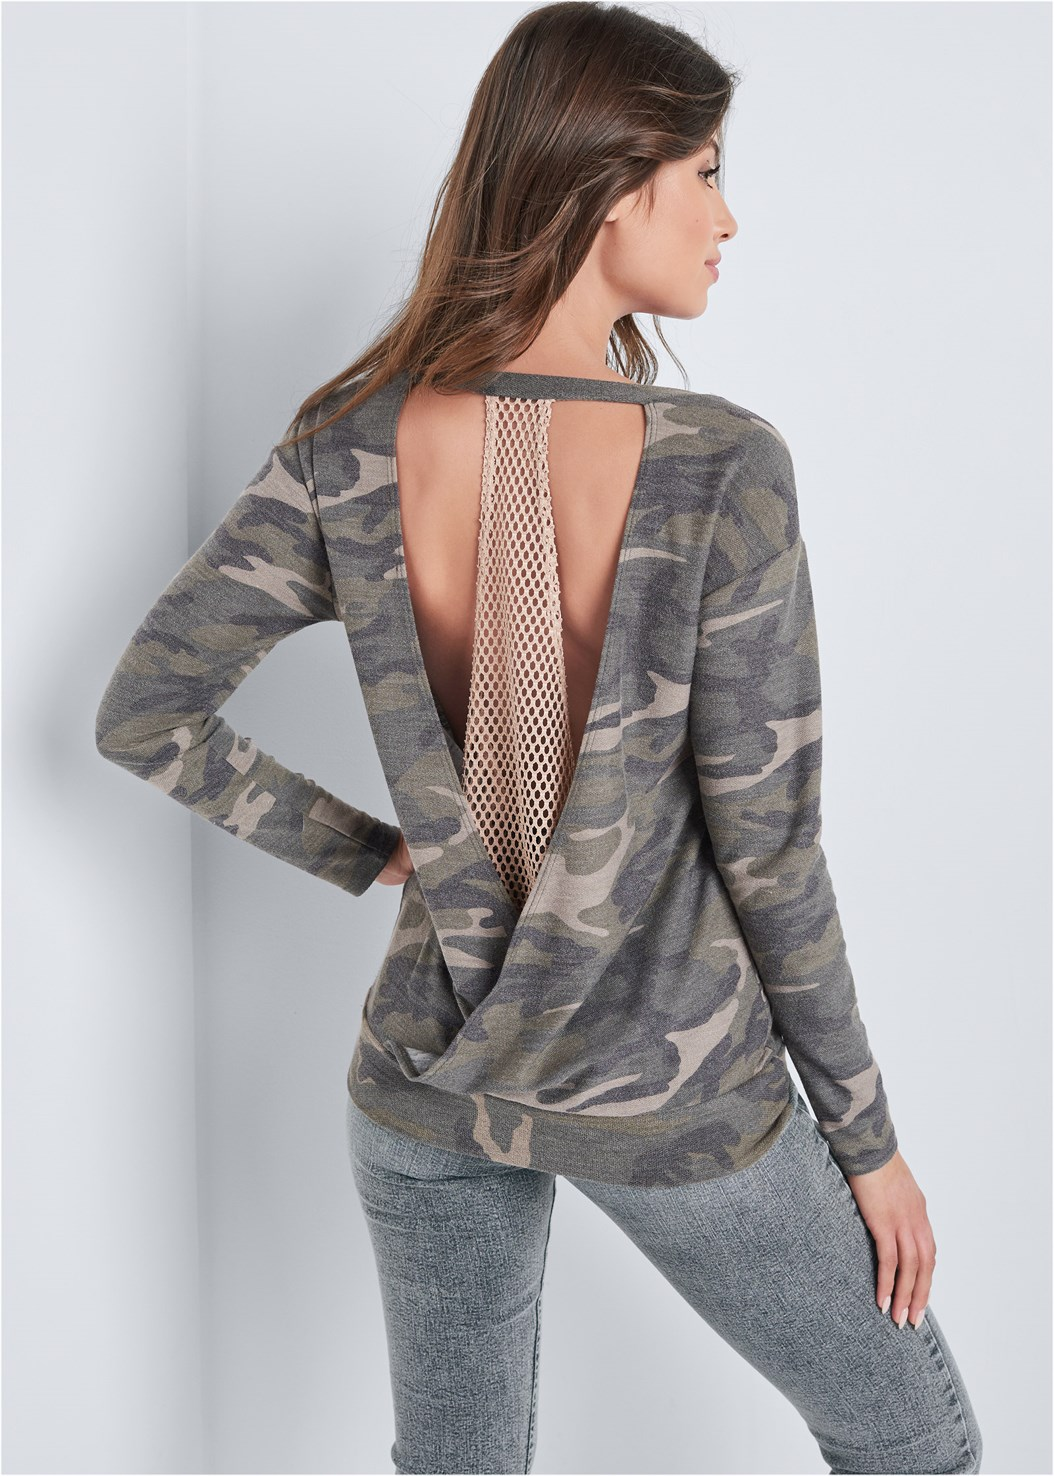 Camo Open Back Lounge Top,Washed Kick Flare Jeans,Strap Solutions